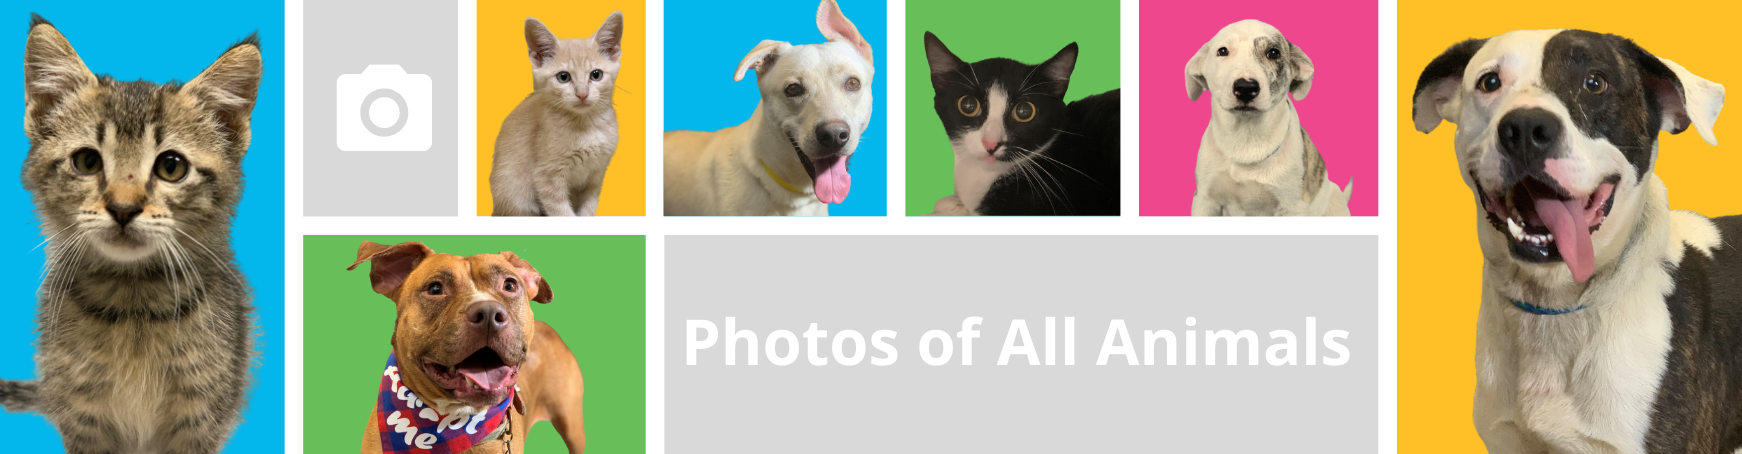 pictures-of-all-animals-banner